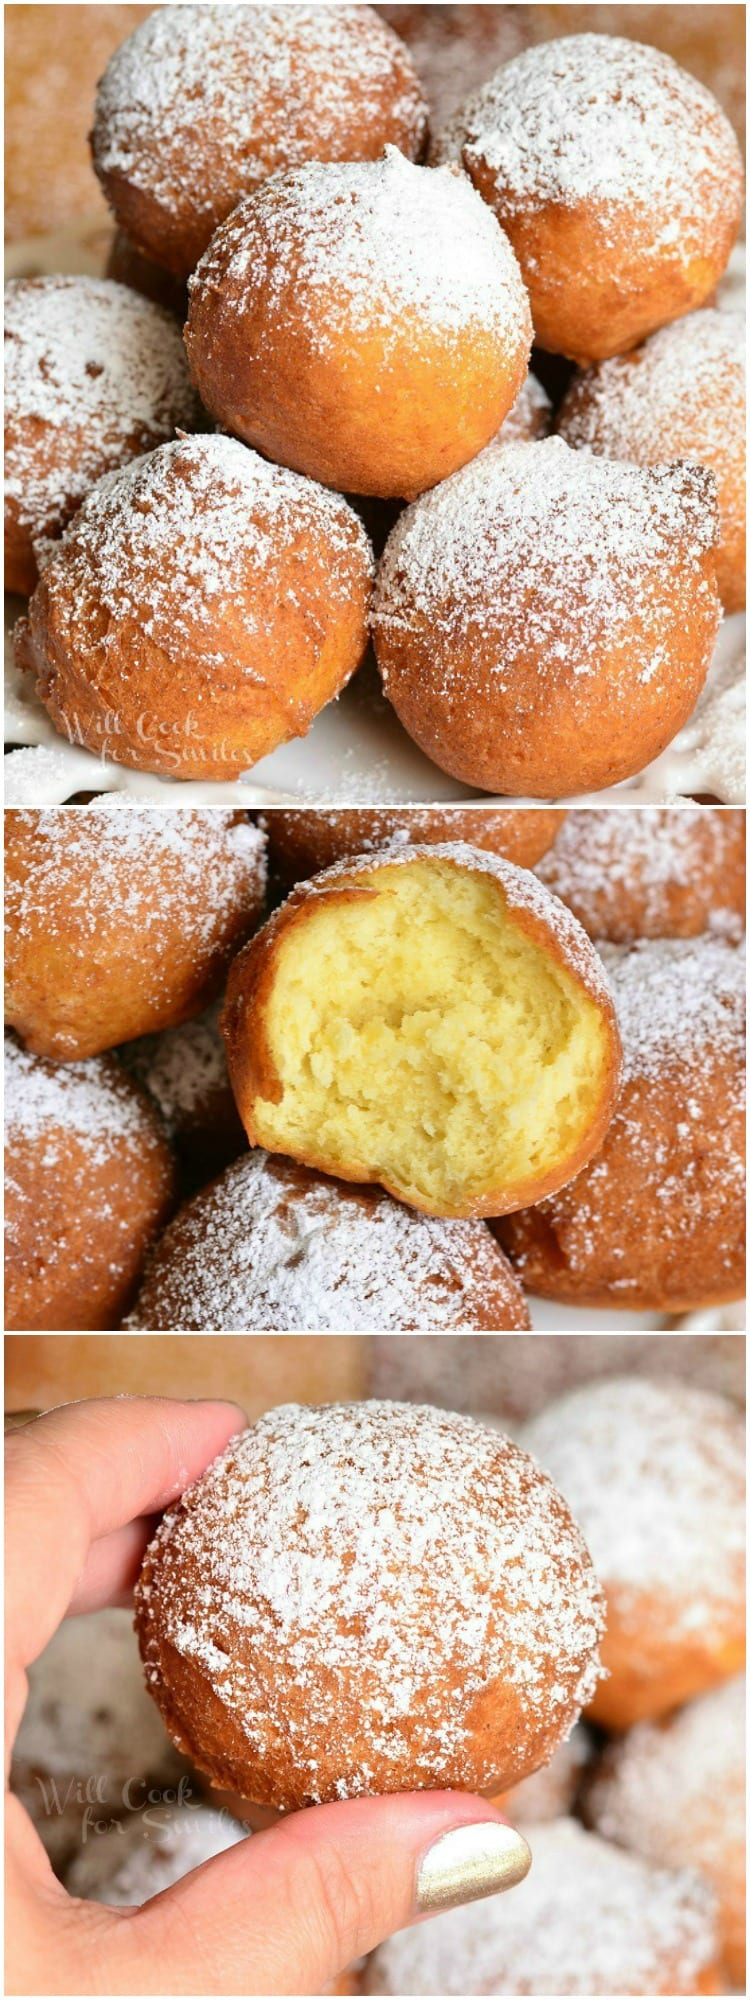 Easy Ricotta Doughnuts 6 from willcookforsmiles.com #breakfast #donut #doughnut